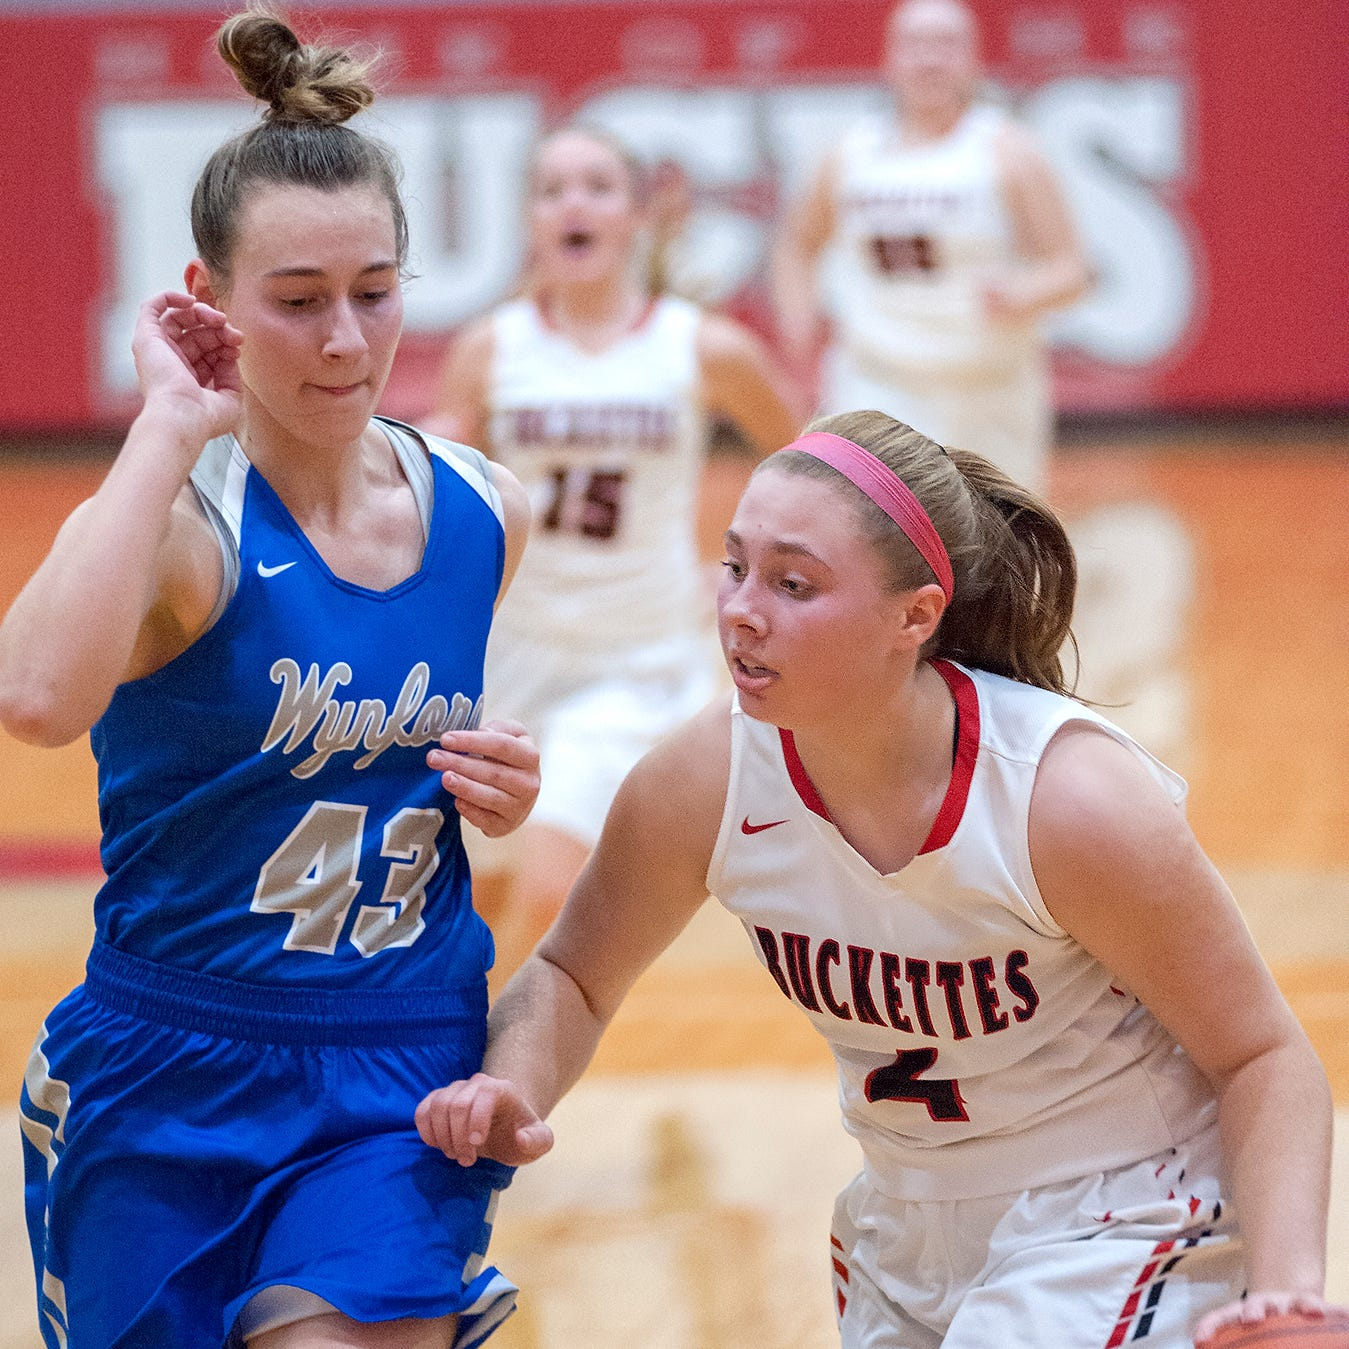 Buckettes open N10 play with a win over Wynford